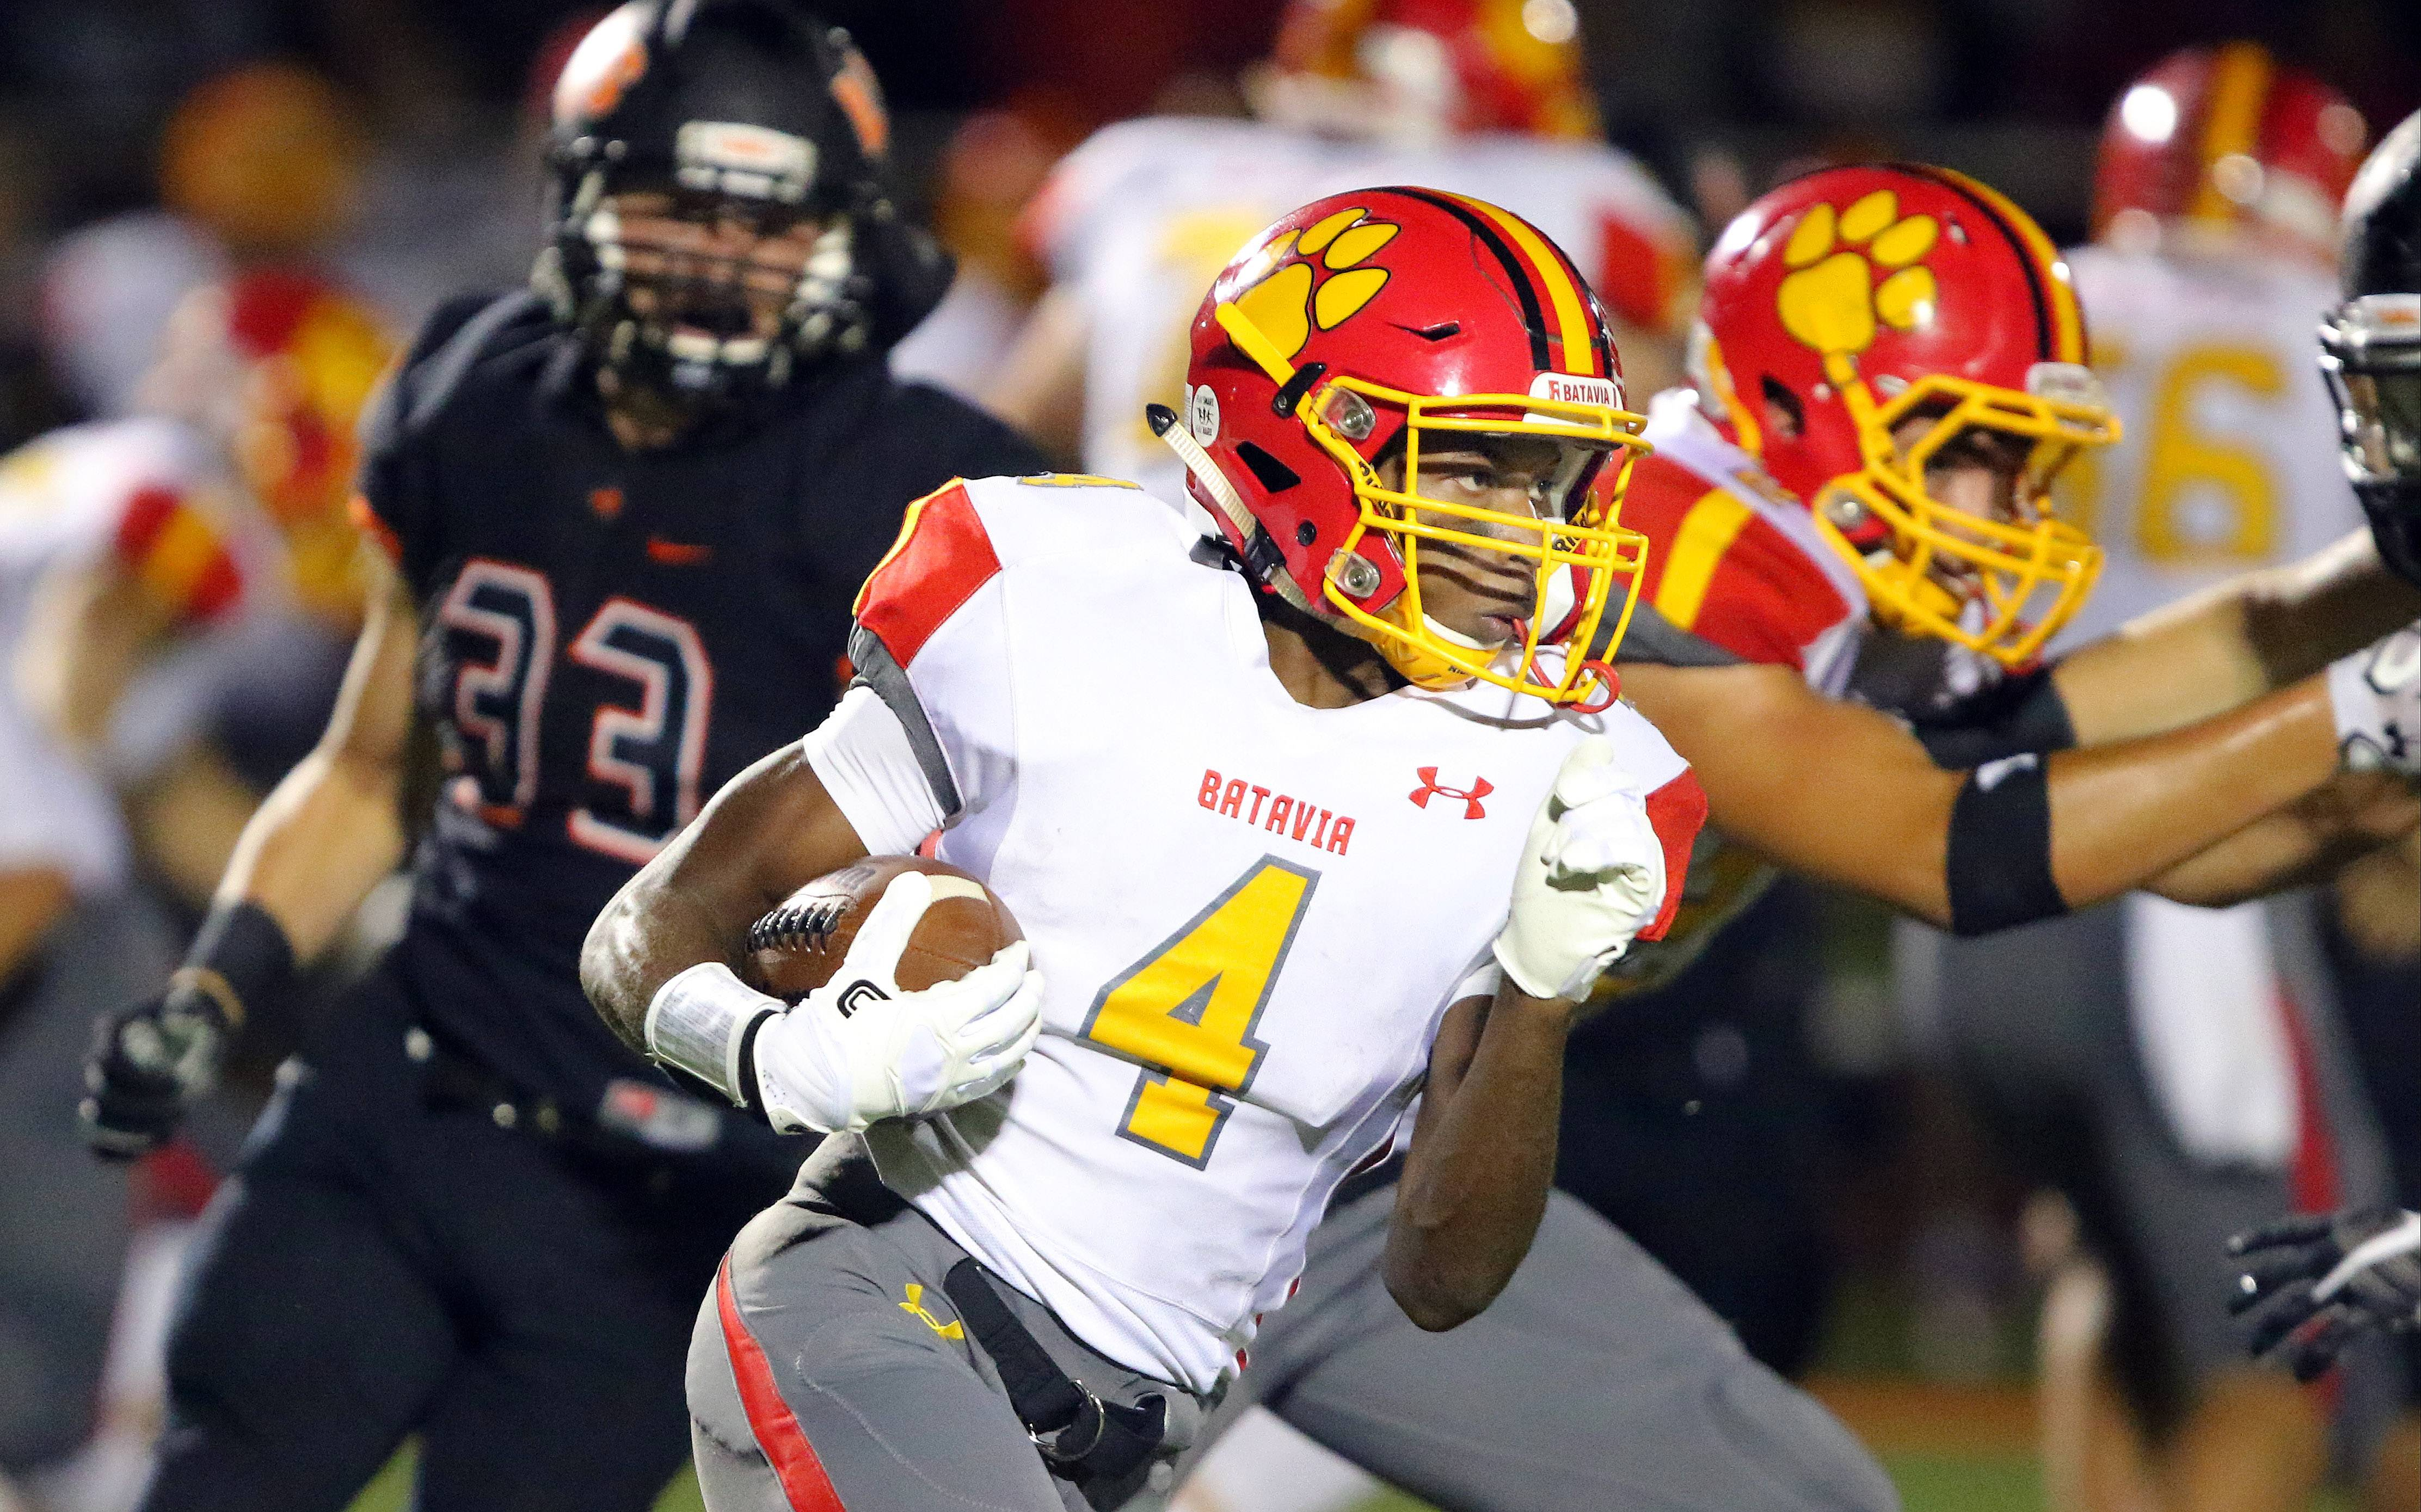 Batavia and running back Reggie Phillips hope to return to the top of the Upstate Eight River this season.